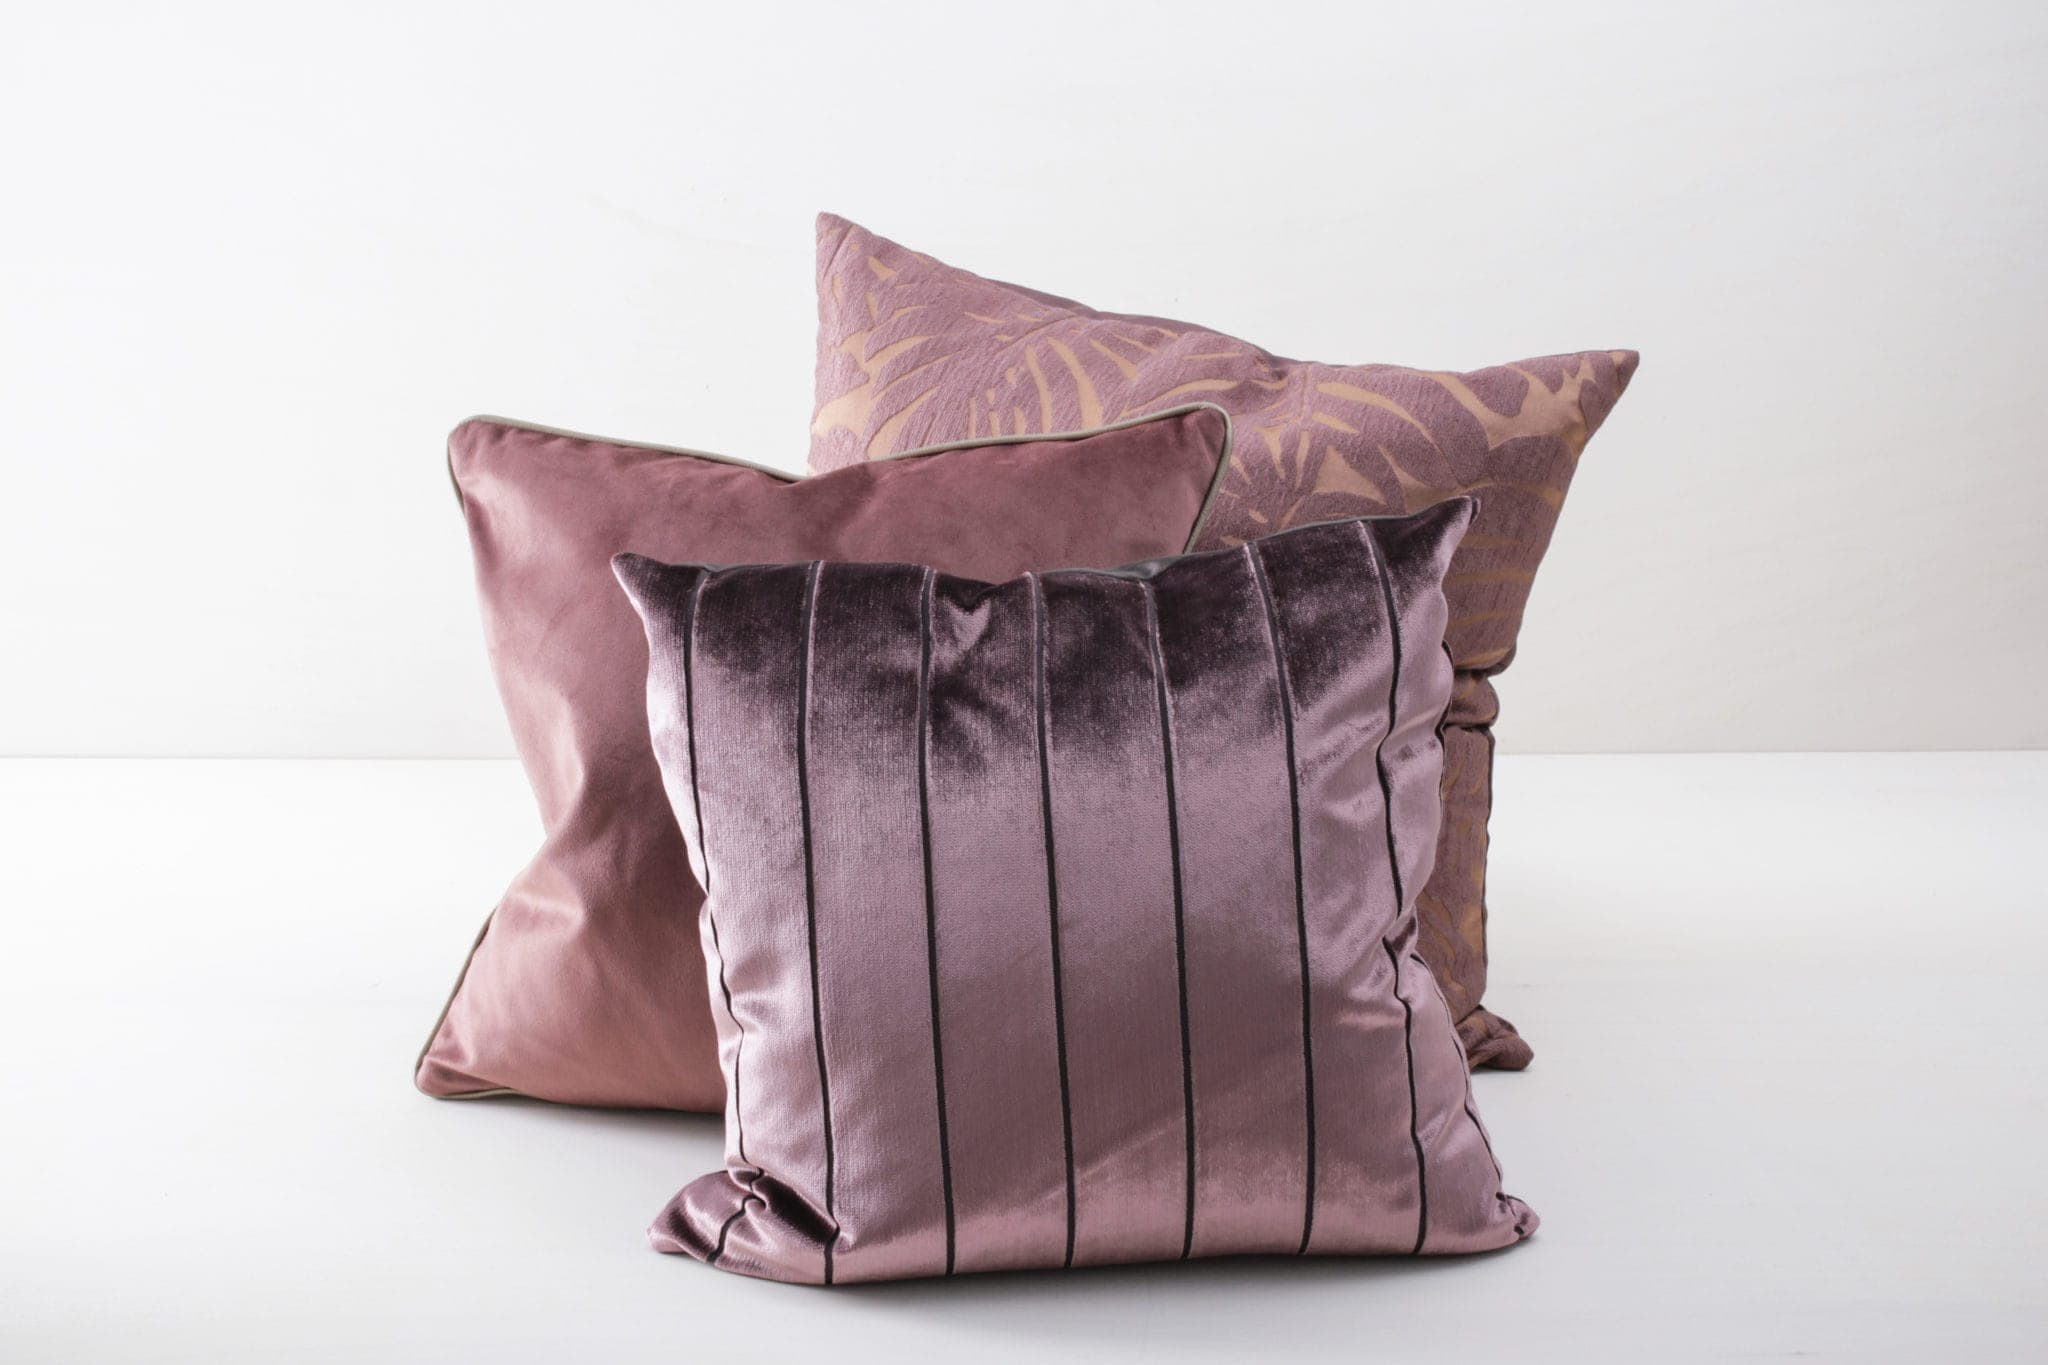 Pillow Monica 60x60 | Soft pillows with slightly shiny surface and leaf pattern, made of cotton. Several colours and patterns to combine. | gotvintage Rental & Event Design